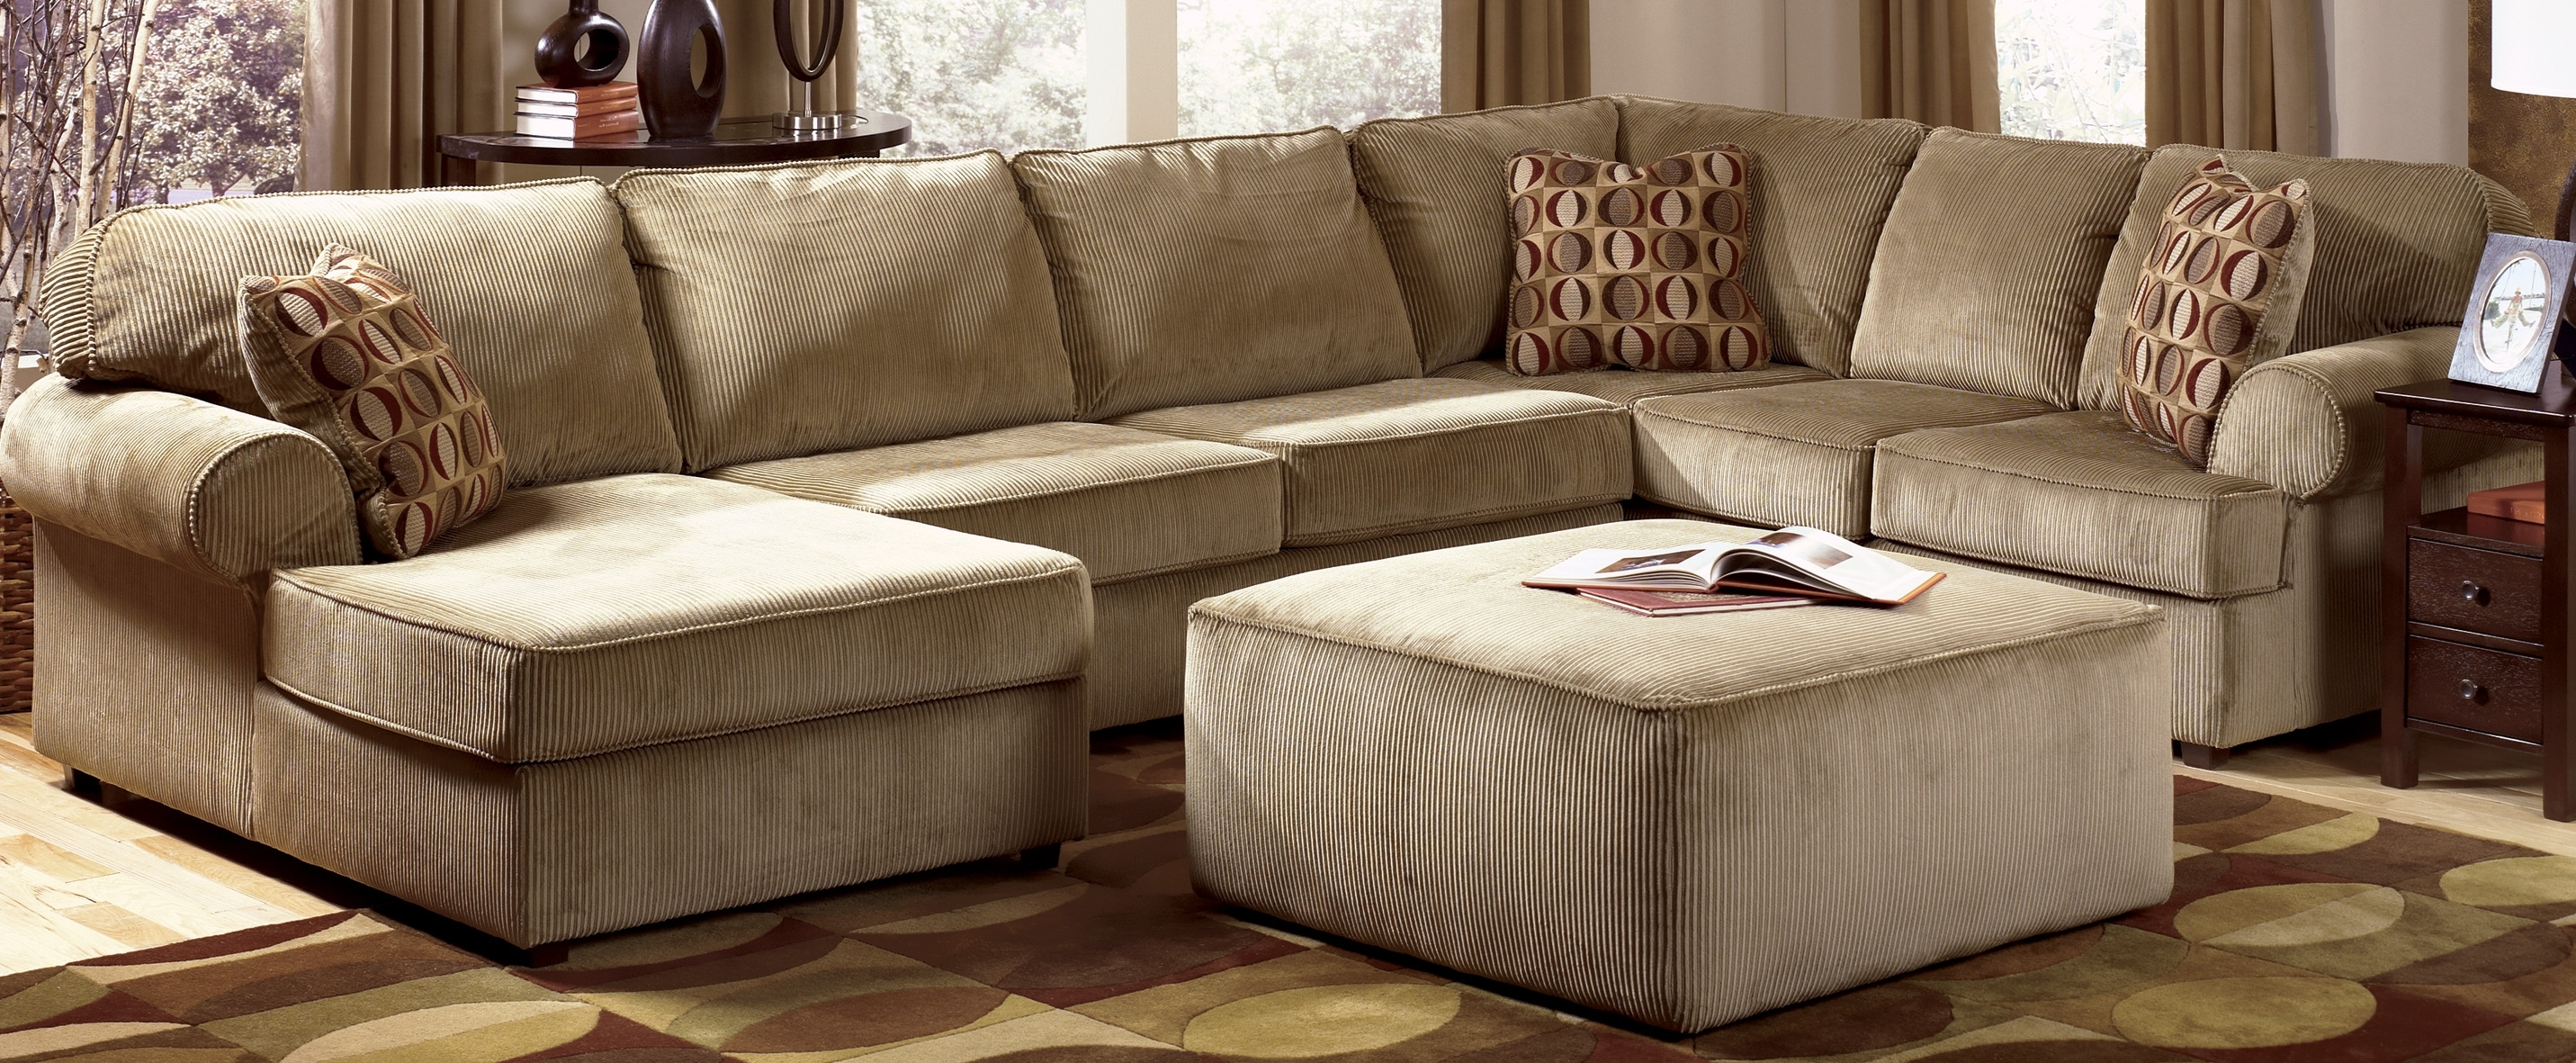 2019 Recent N Best Affordable Sofa Nice Cheap Sectional Sofas Gscjz Intended For Affordable Sectional Sofas (View 19 of 20)